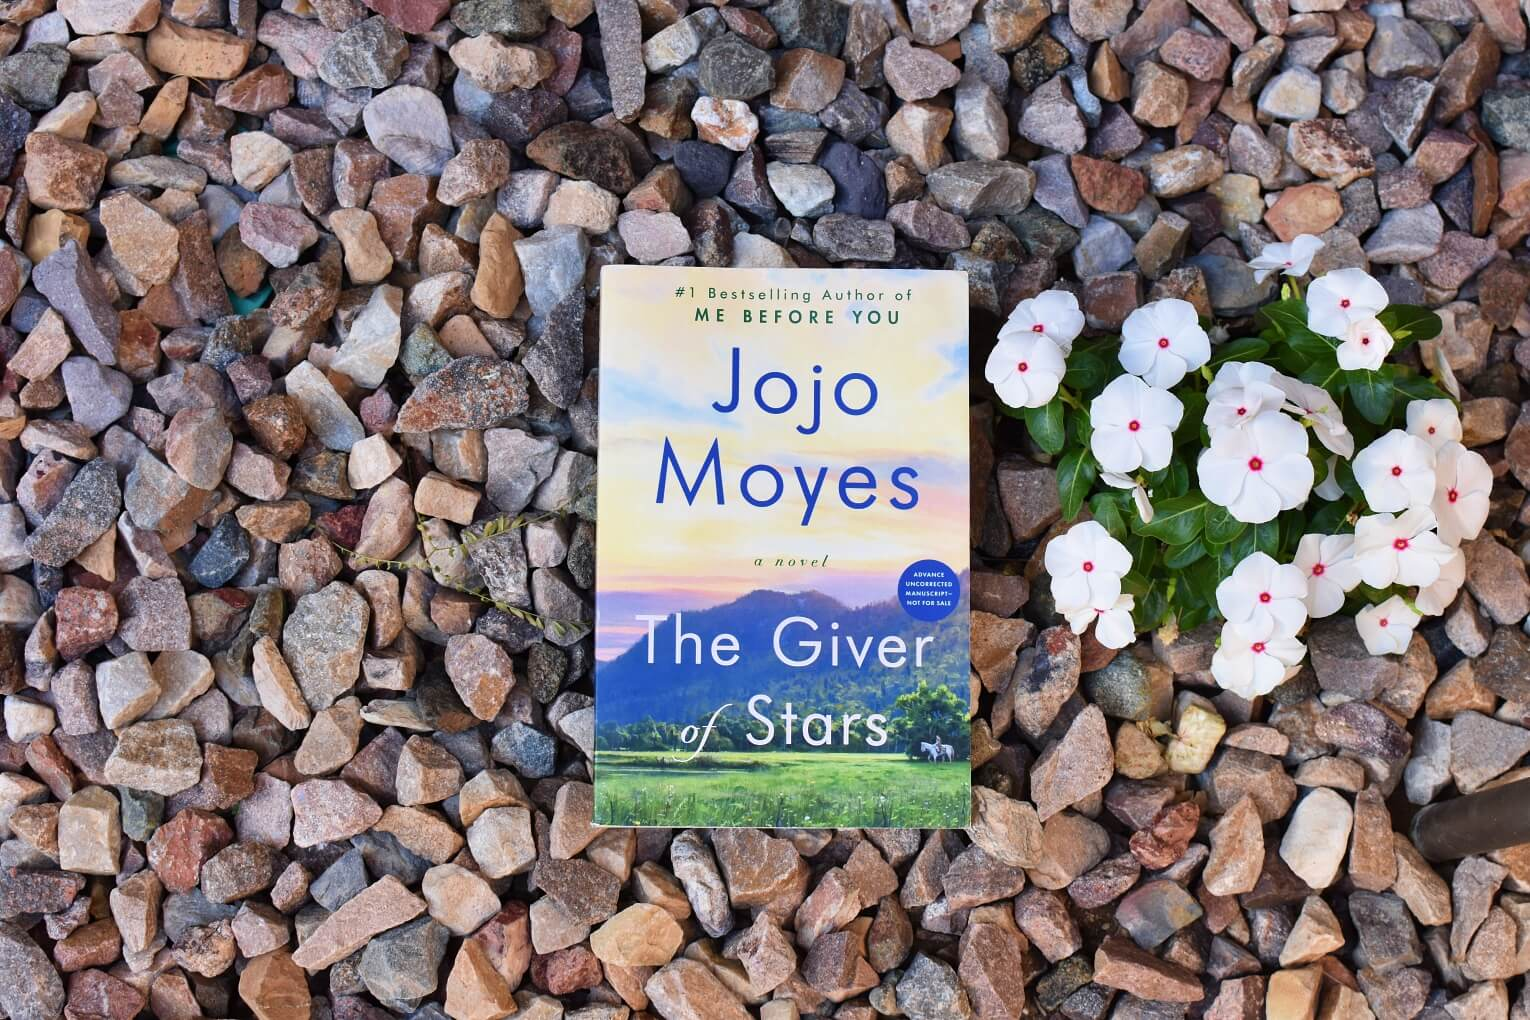 The Giver of Stars Review Jojo Moyes - Book Club Chat